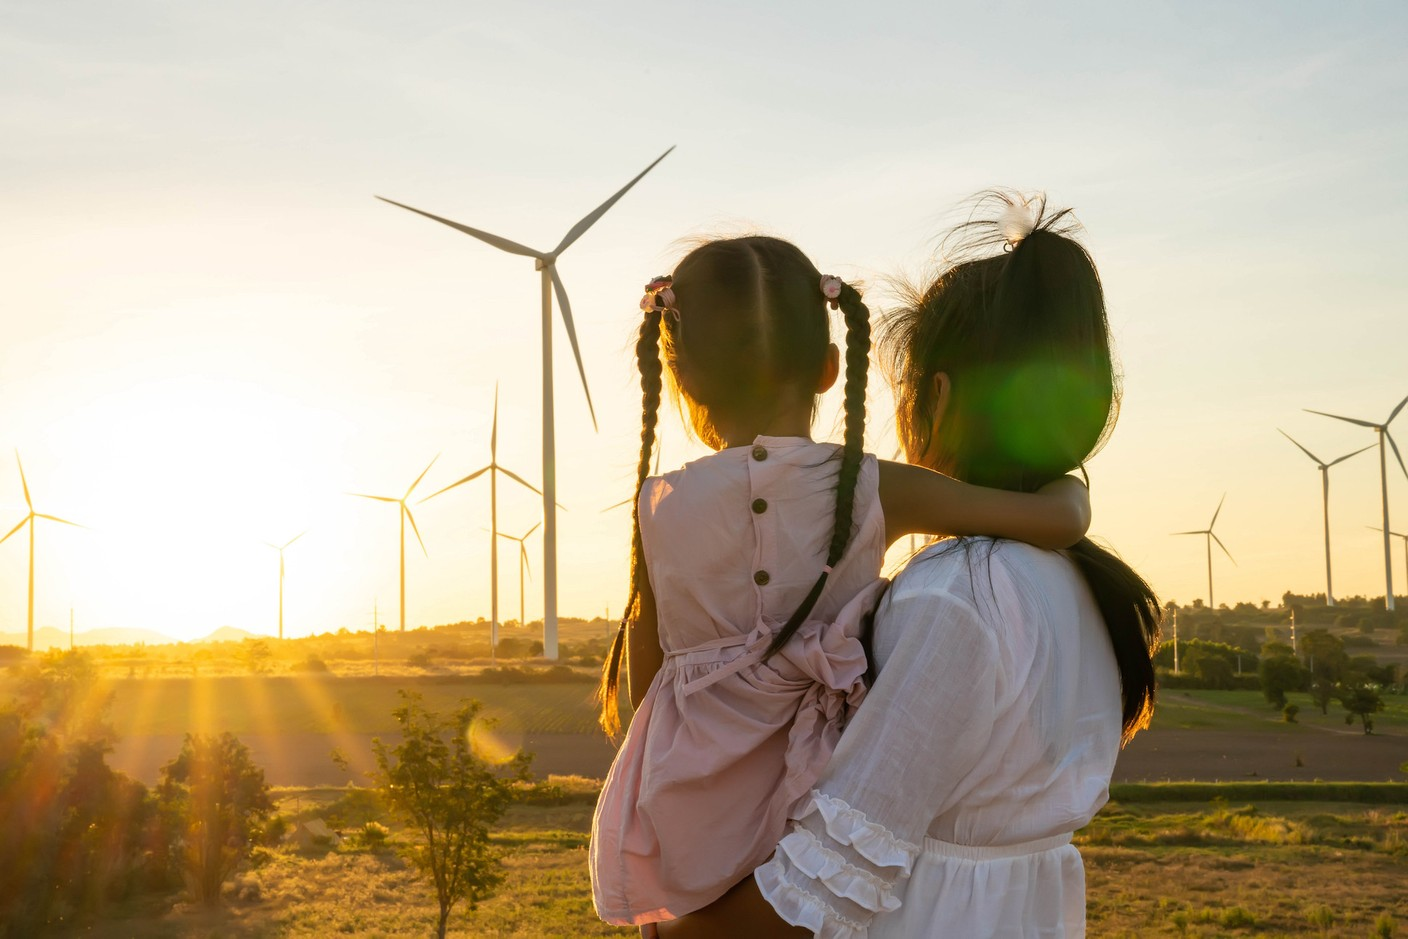 Emerging countries remain underinvested in sustainable finance operations. (Photo: Shutterstock)